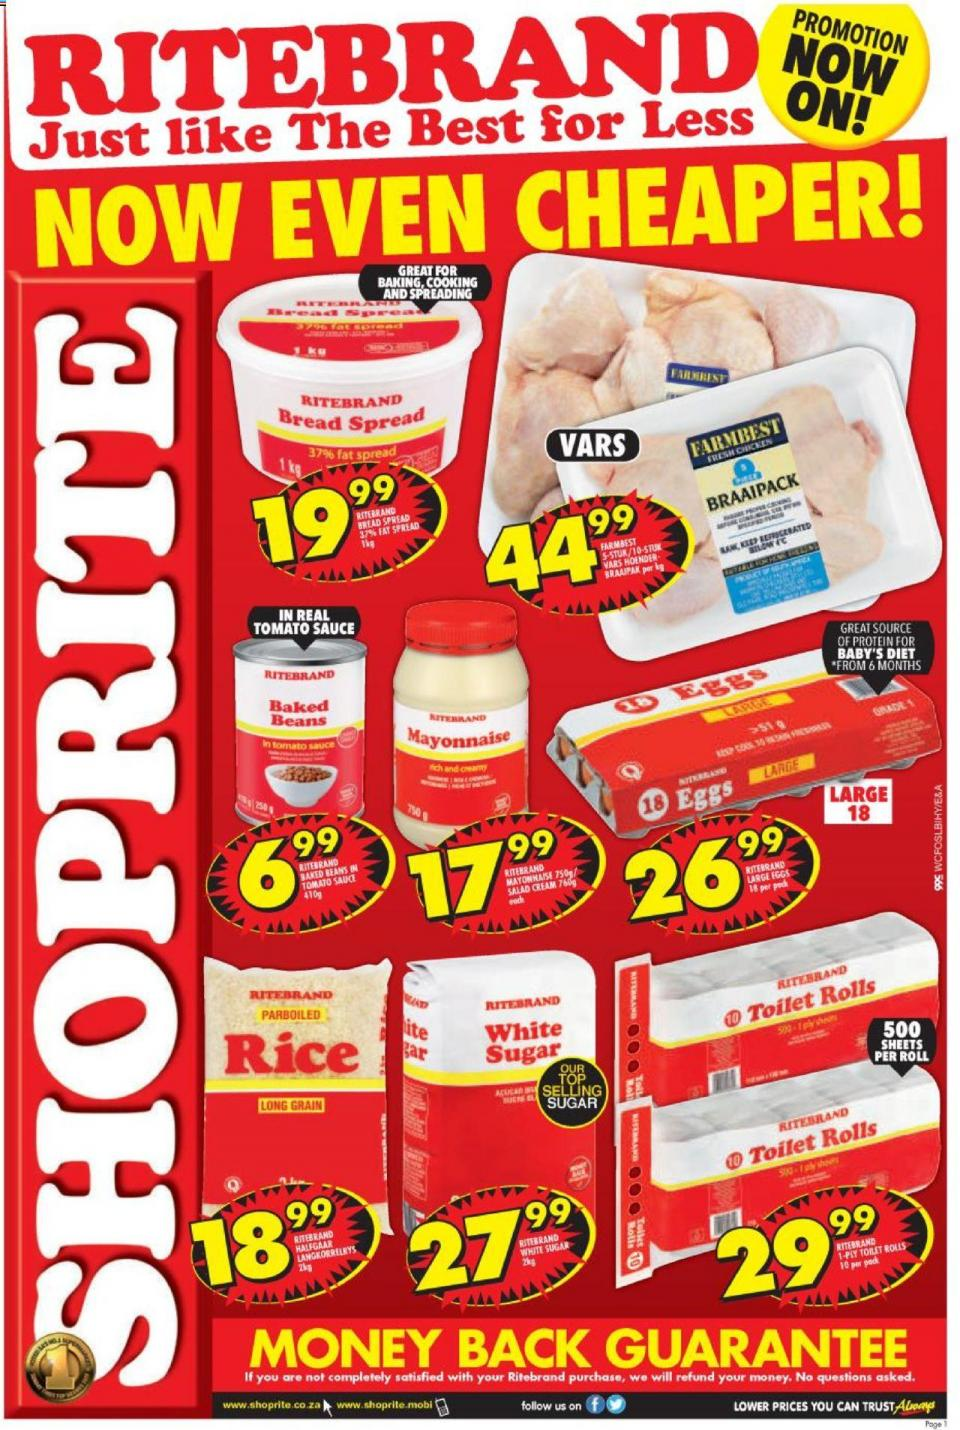 shoprite specials ritebrand promotion 09 october 2019 western cape